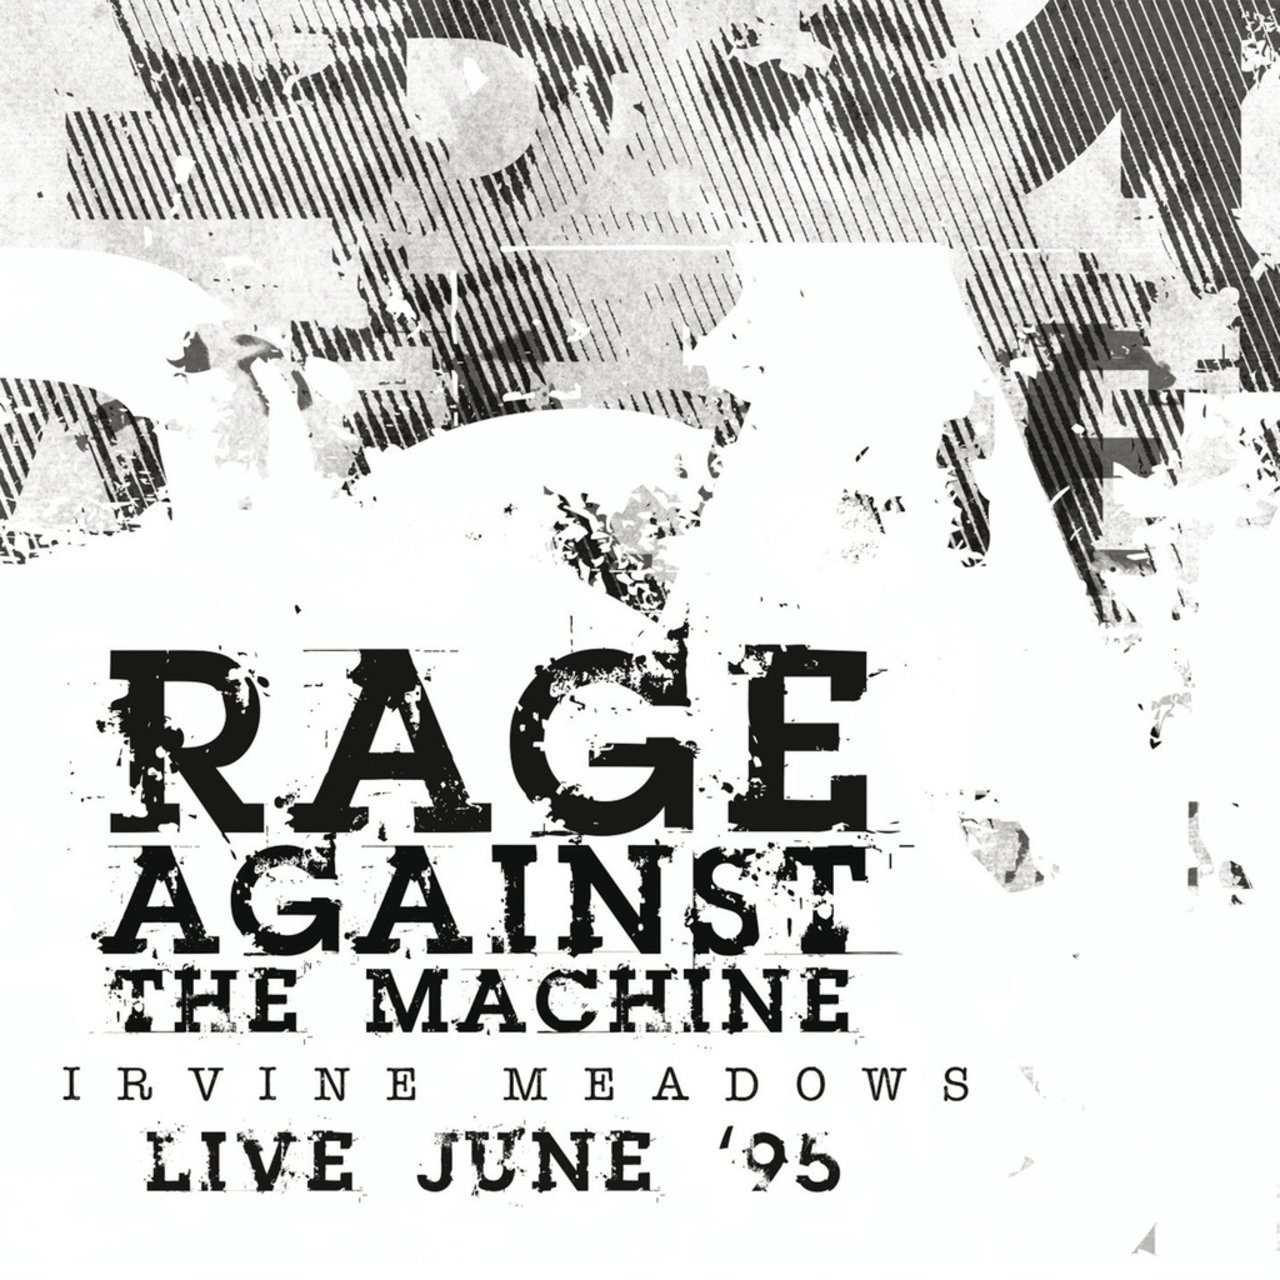 Irvine Meadows (17 June '95) [Remastered]